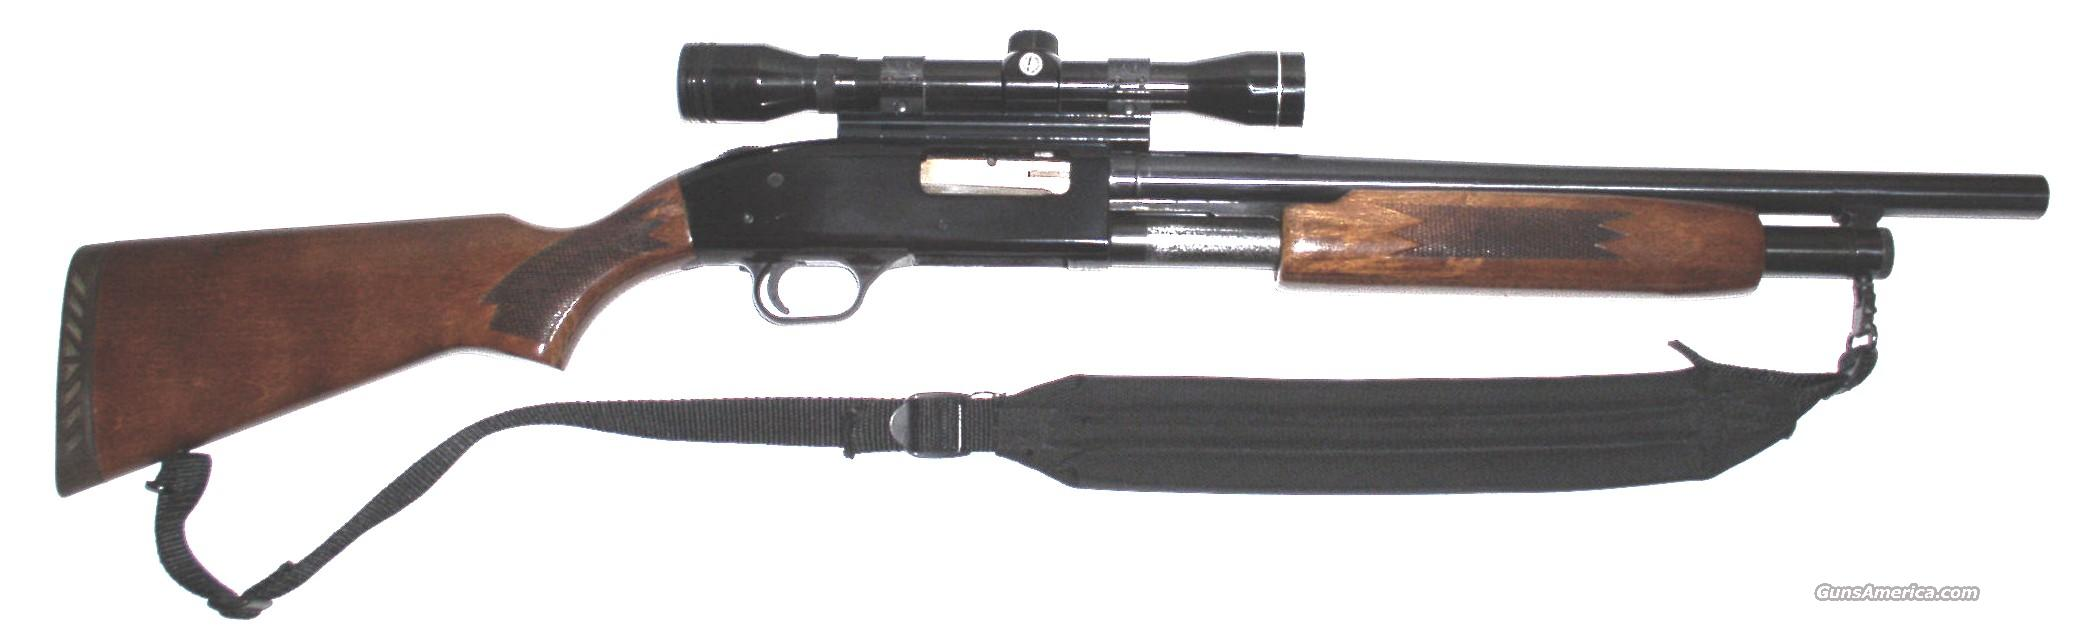 Mossberg Model 500  Guns > Shotguns > Mossberg Shotguns > Pump > Tactical